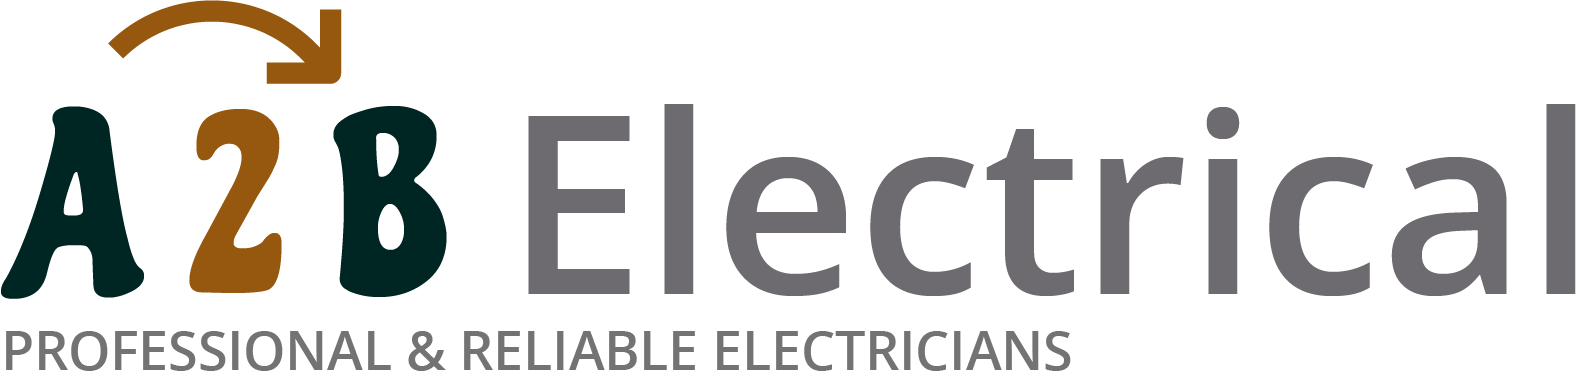 If you have electrical wiring problems in Golders Green, we can provide an electrician to have a look for you.